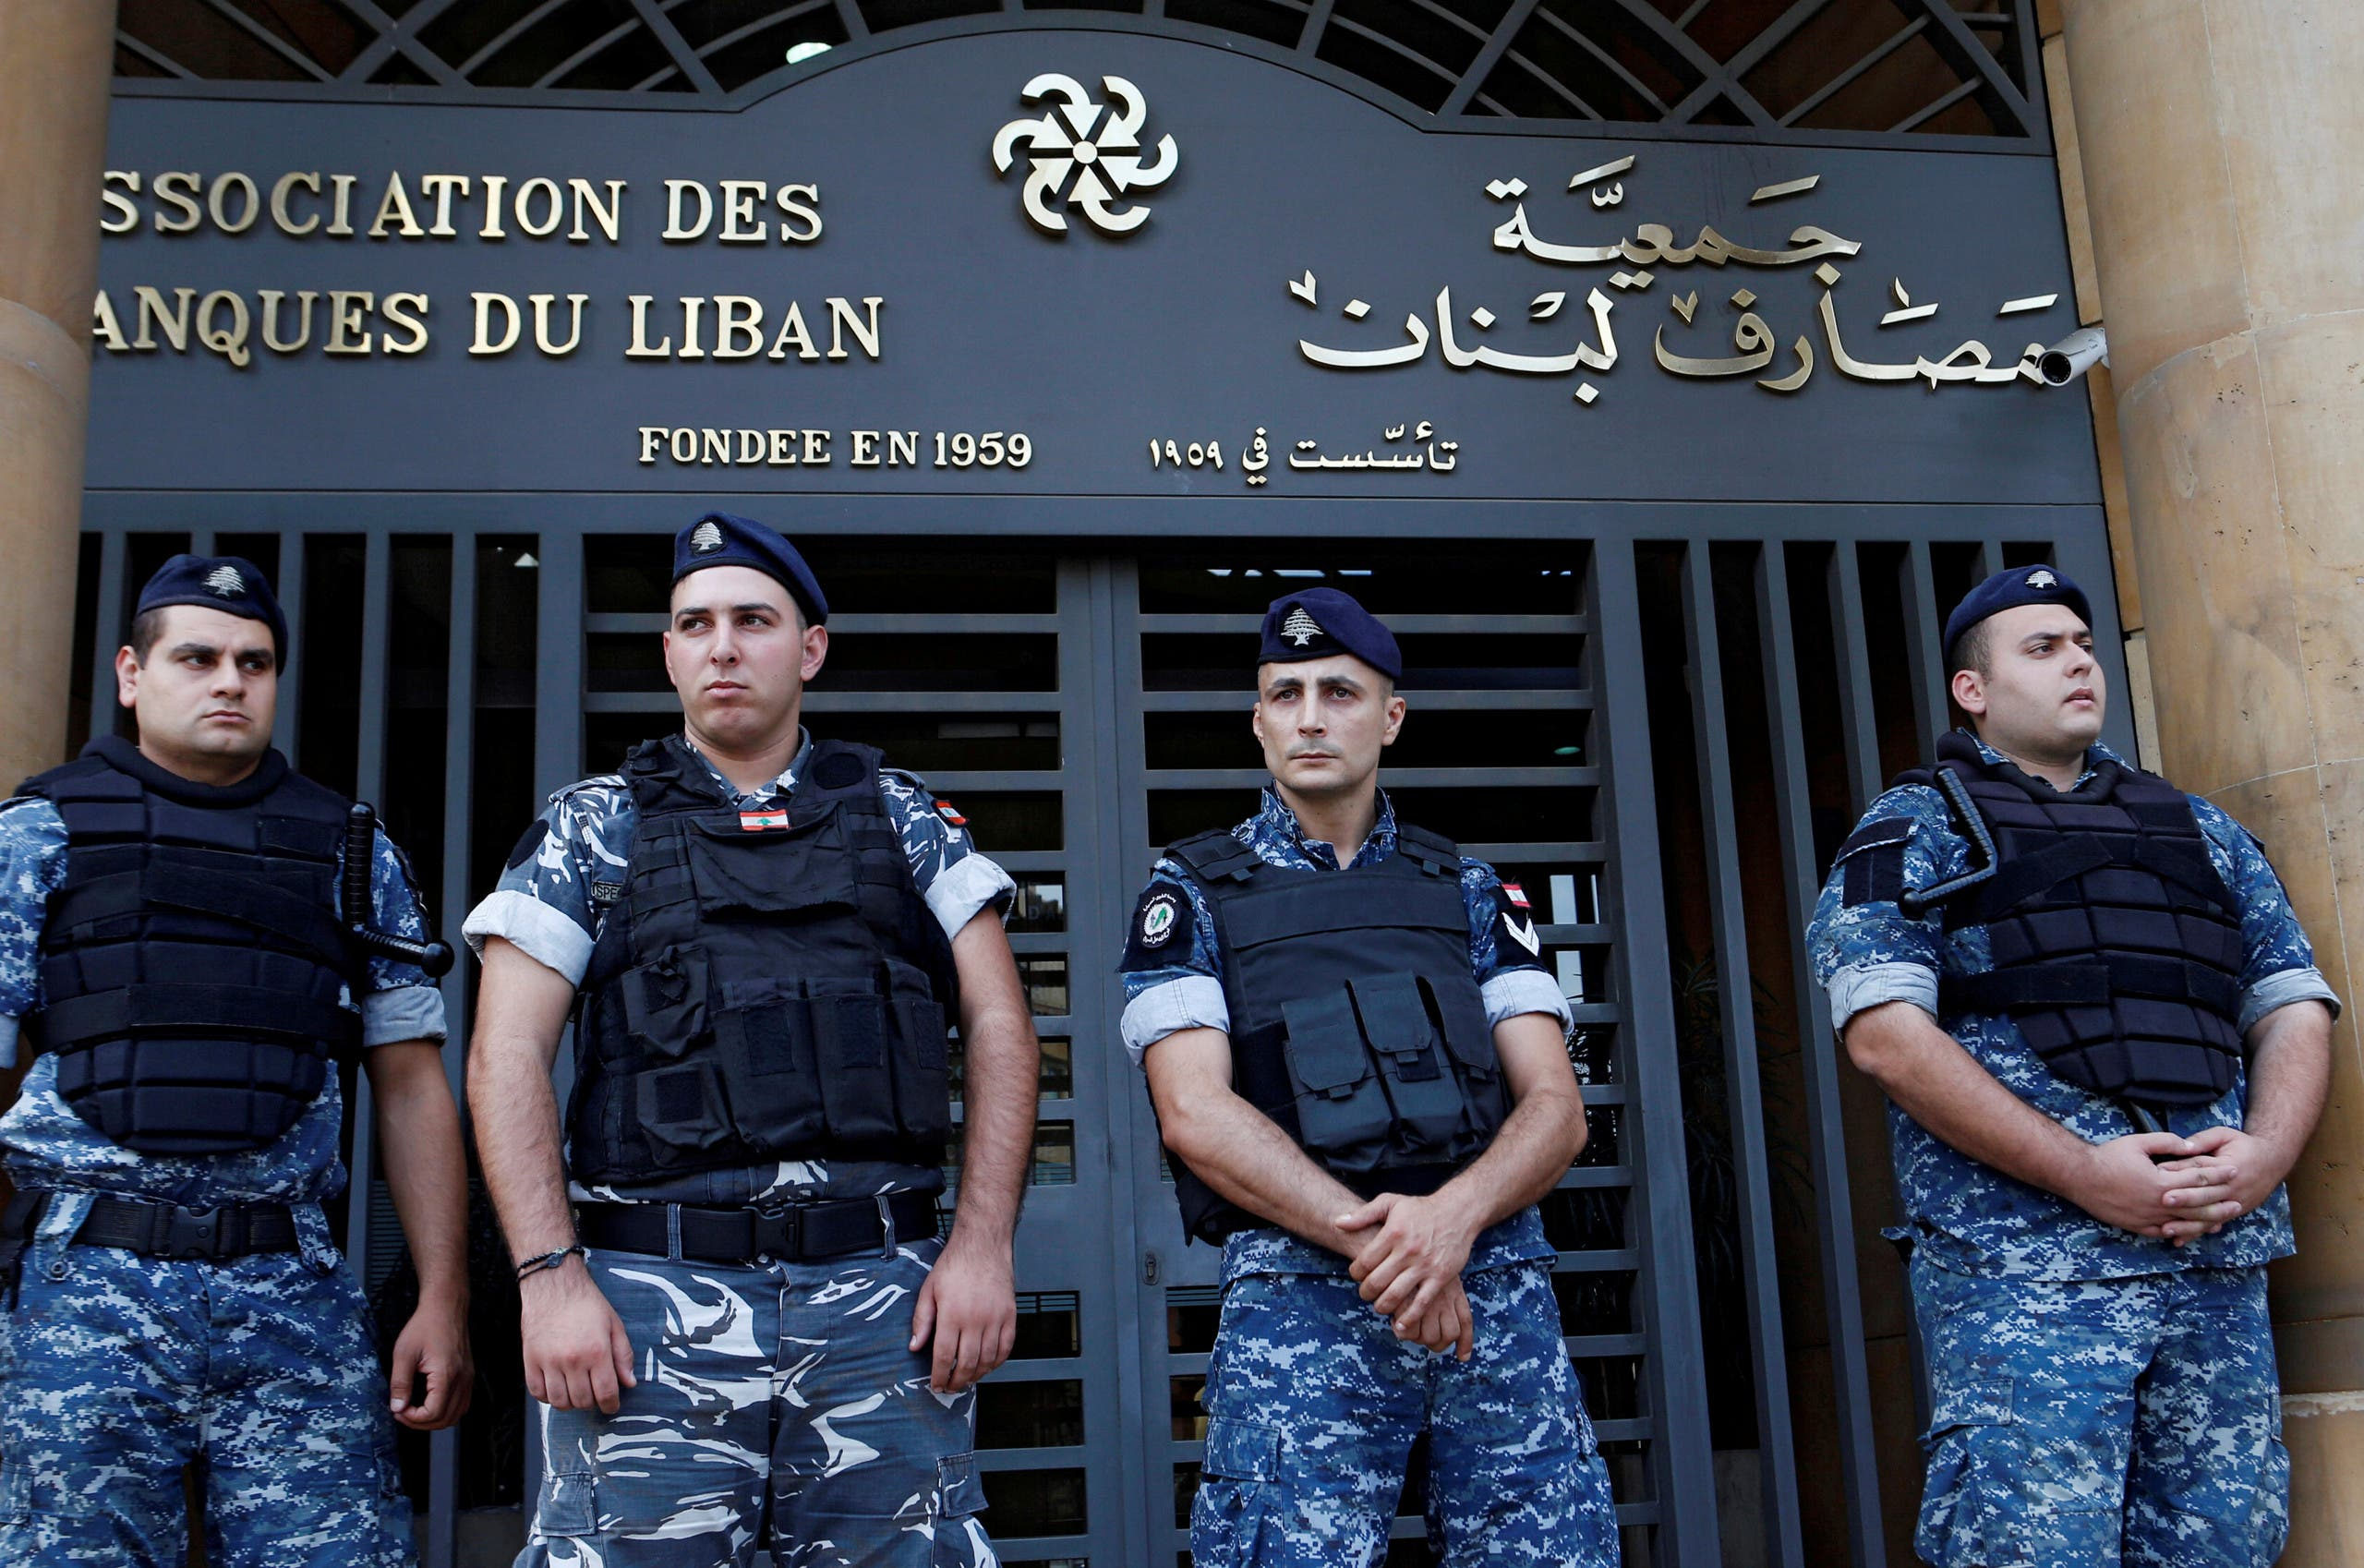 Lebanese police stand outside the entrance of the Association of Banks in downtown Beirut, Lebanon on November 1, 2019. (Reuters)